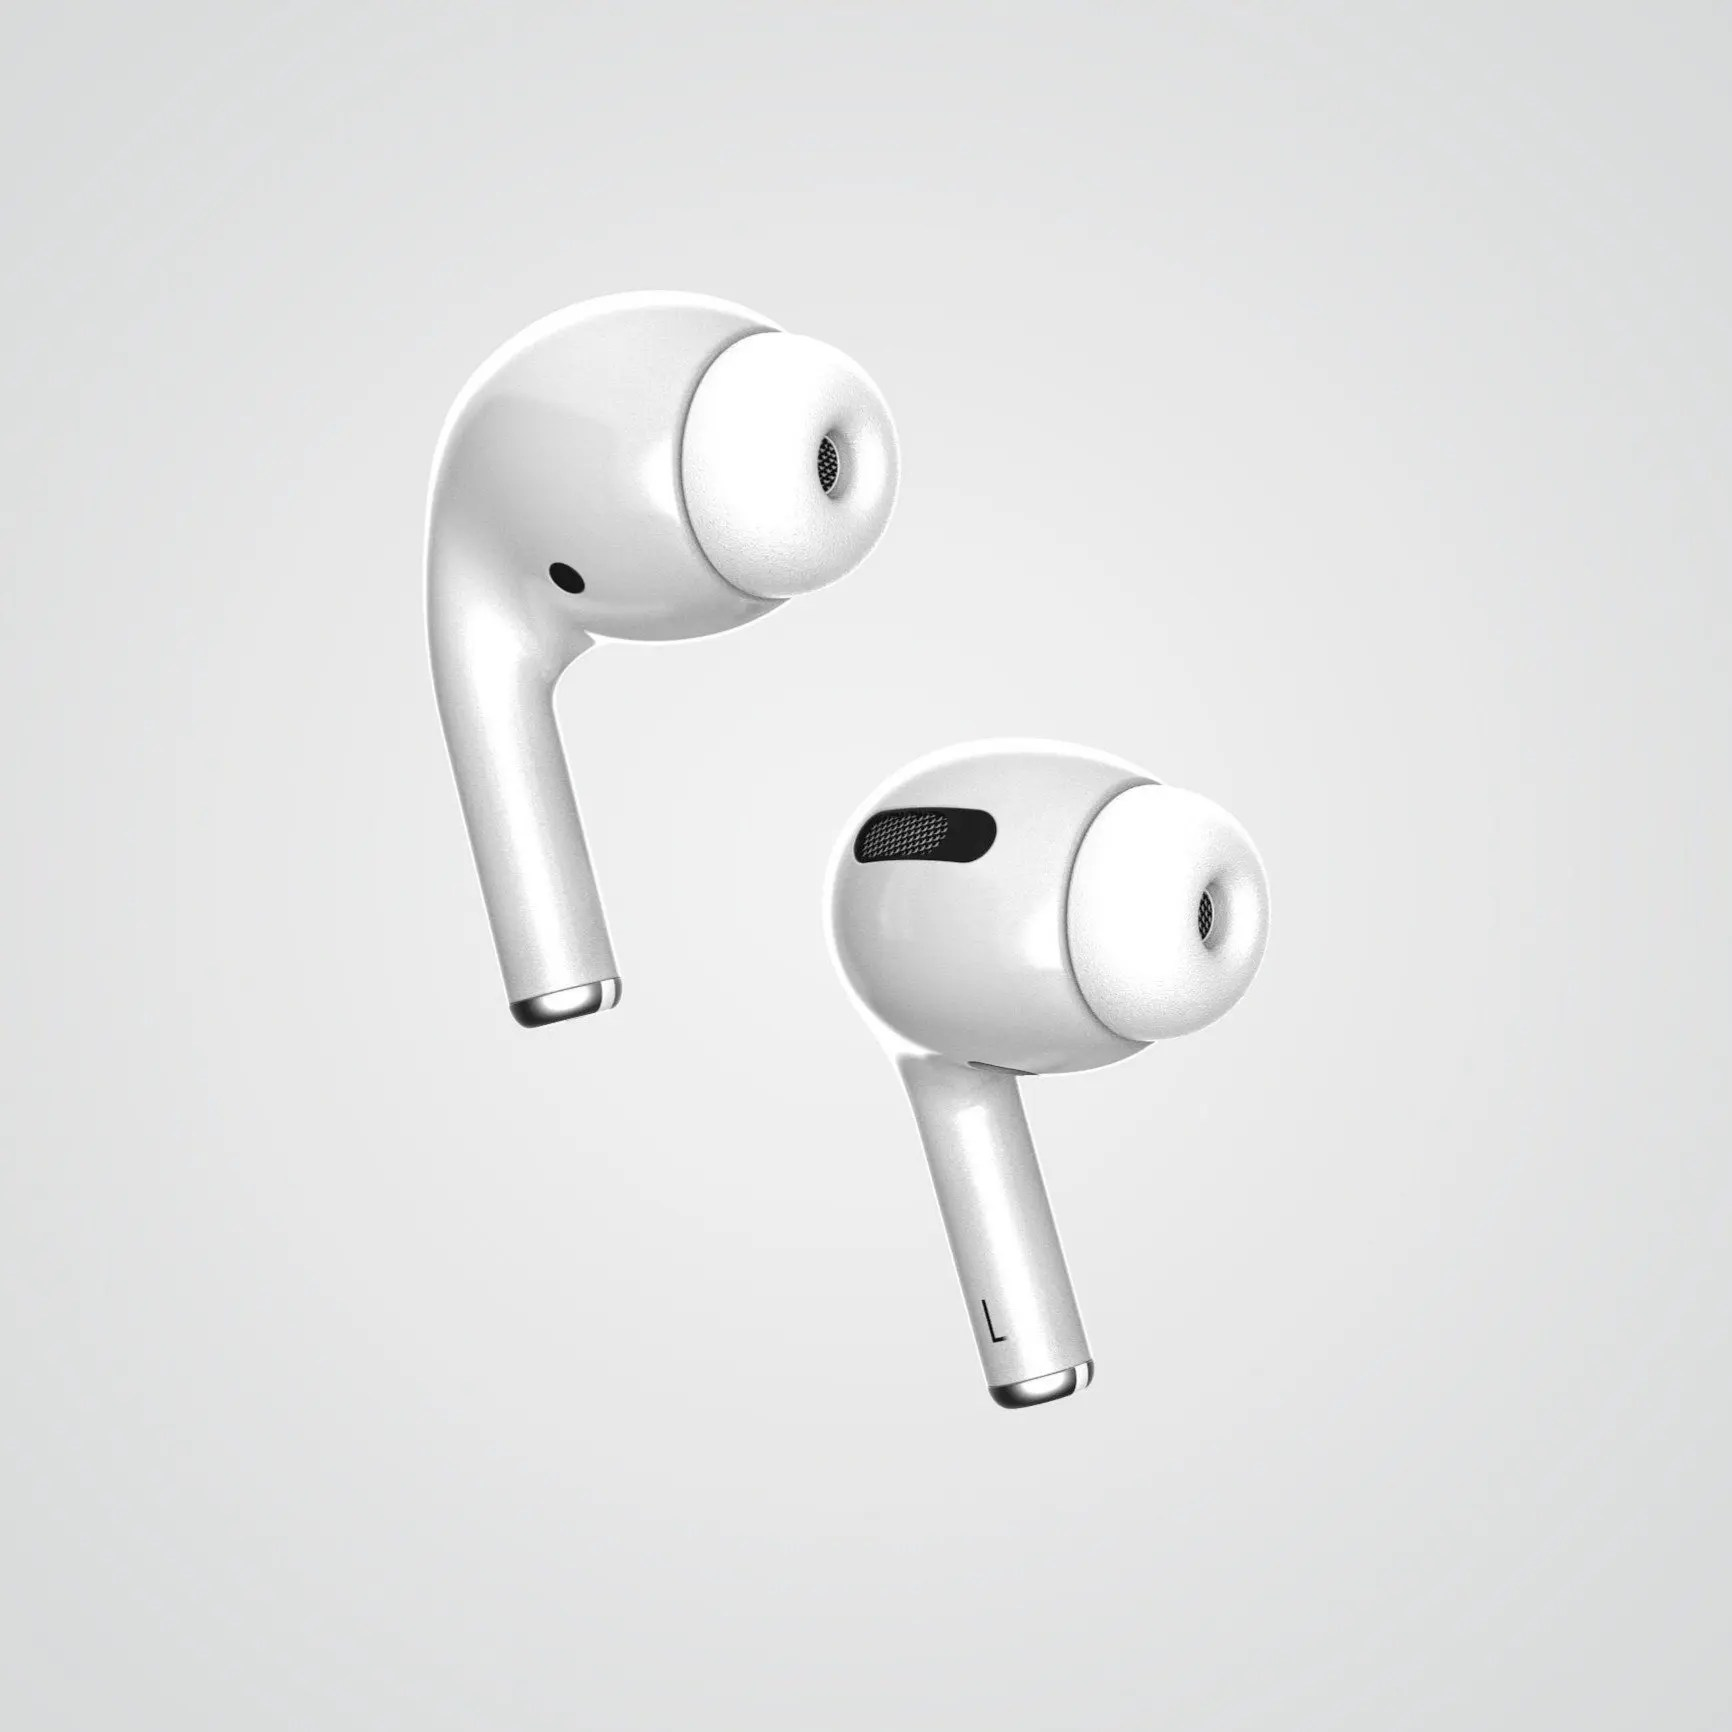 apple airpods 3 release date 2020